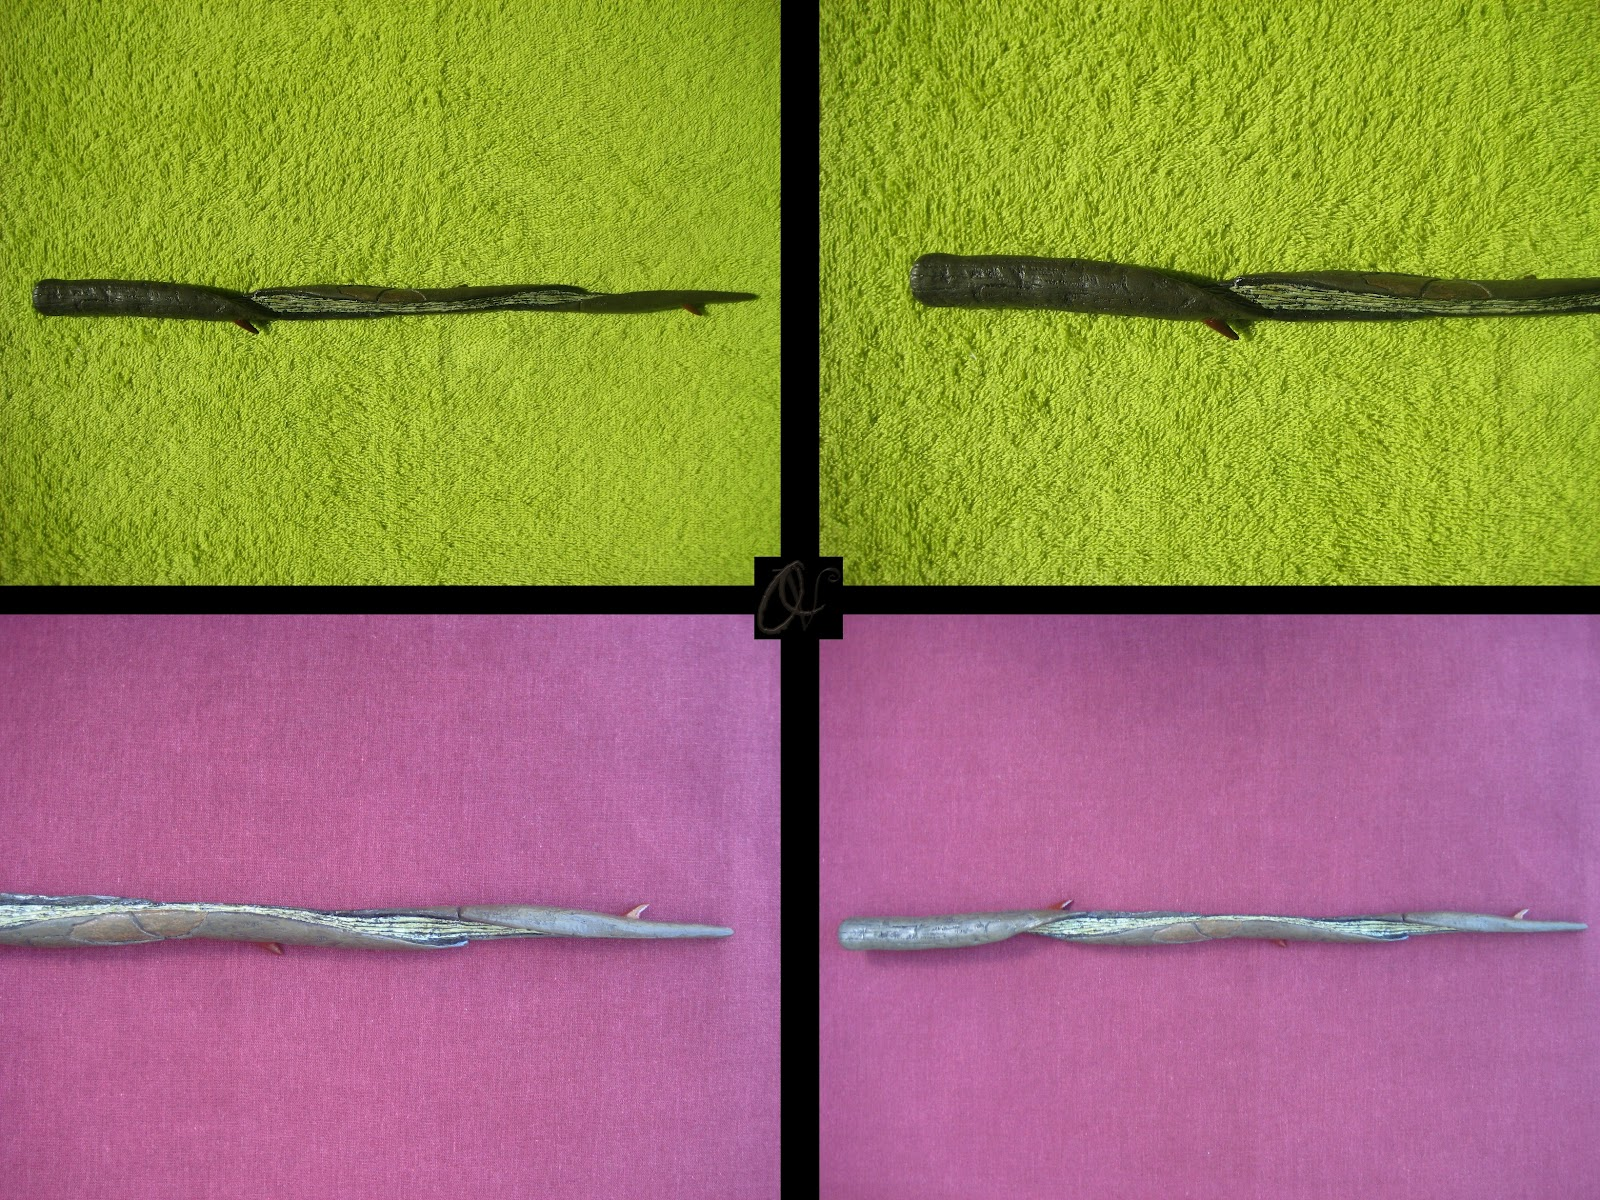 Ollivictors the wand of grindelwald for Grindelwald s wand